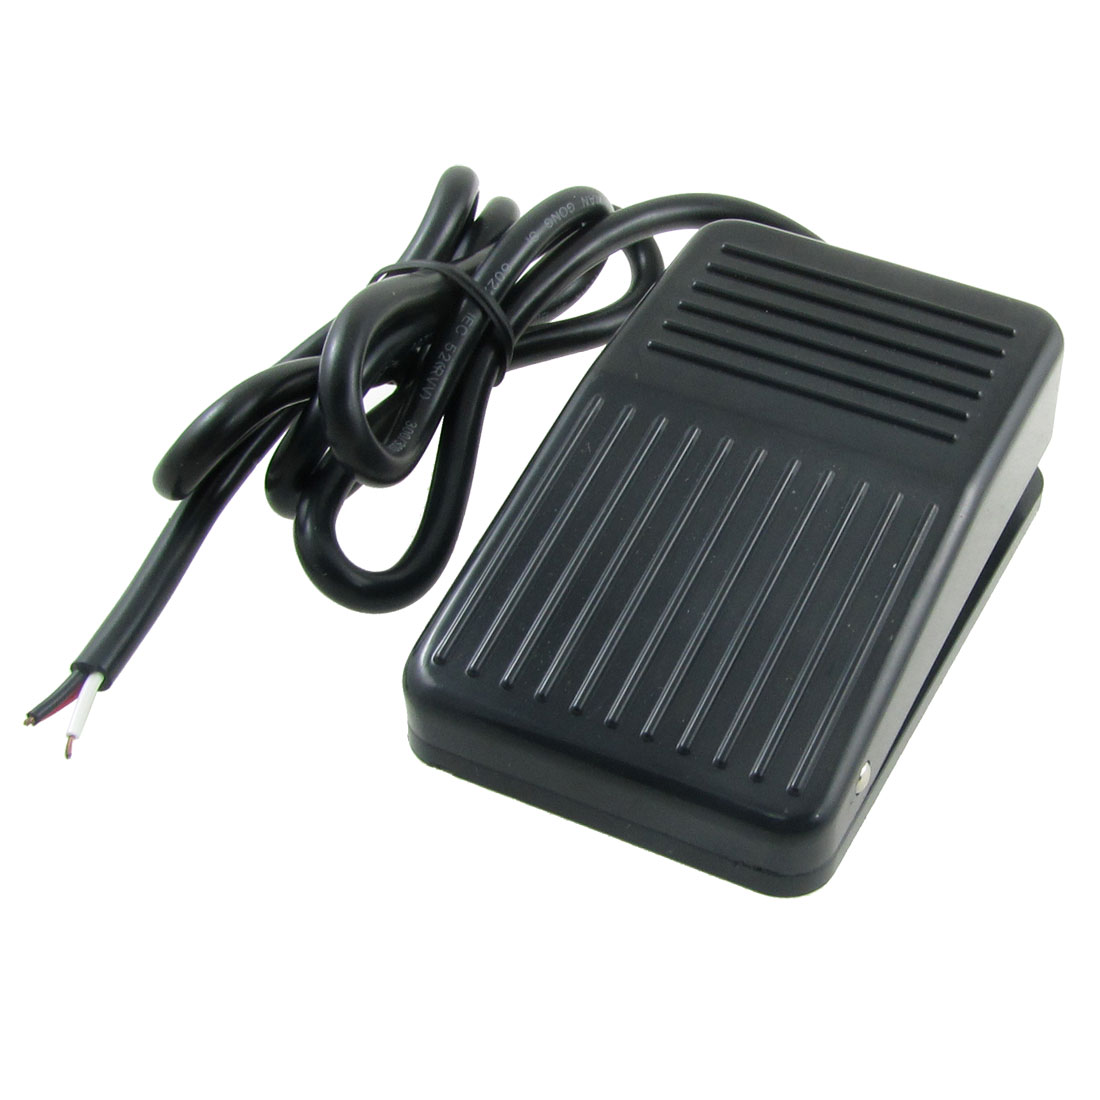 AC 250V 10A SPDT NO NC Antislip Plastic Momentary CNC Power Foot Pedal Switch Black